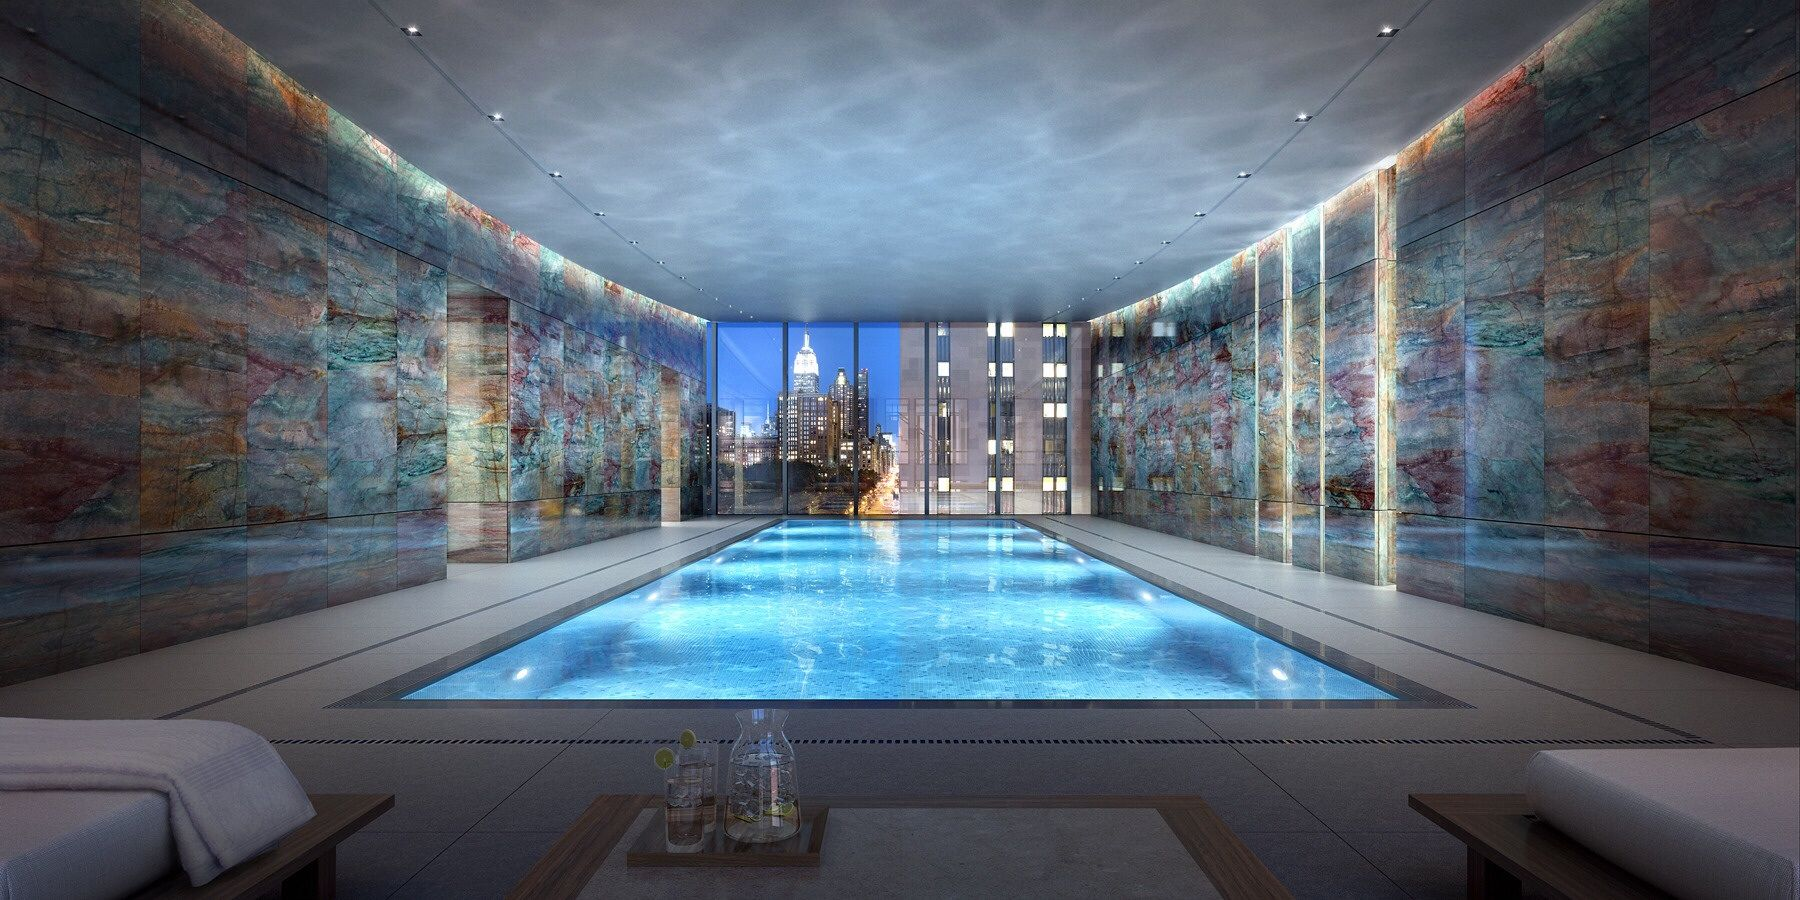 The Private Indoor Pool Room In Rupert Murdoch S New 57m Dollar Ny Penthouse Blarg 1800x900 New York Penthouse New York Condos Luxury Penthouse